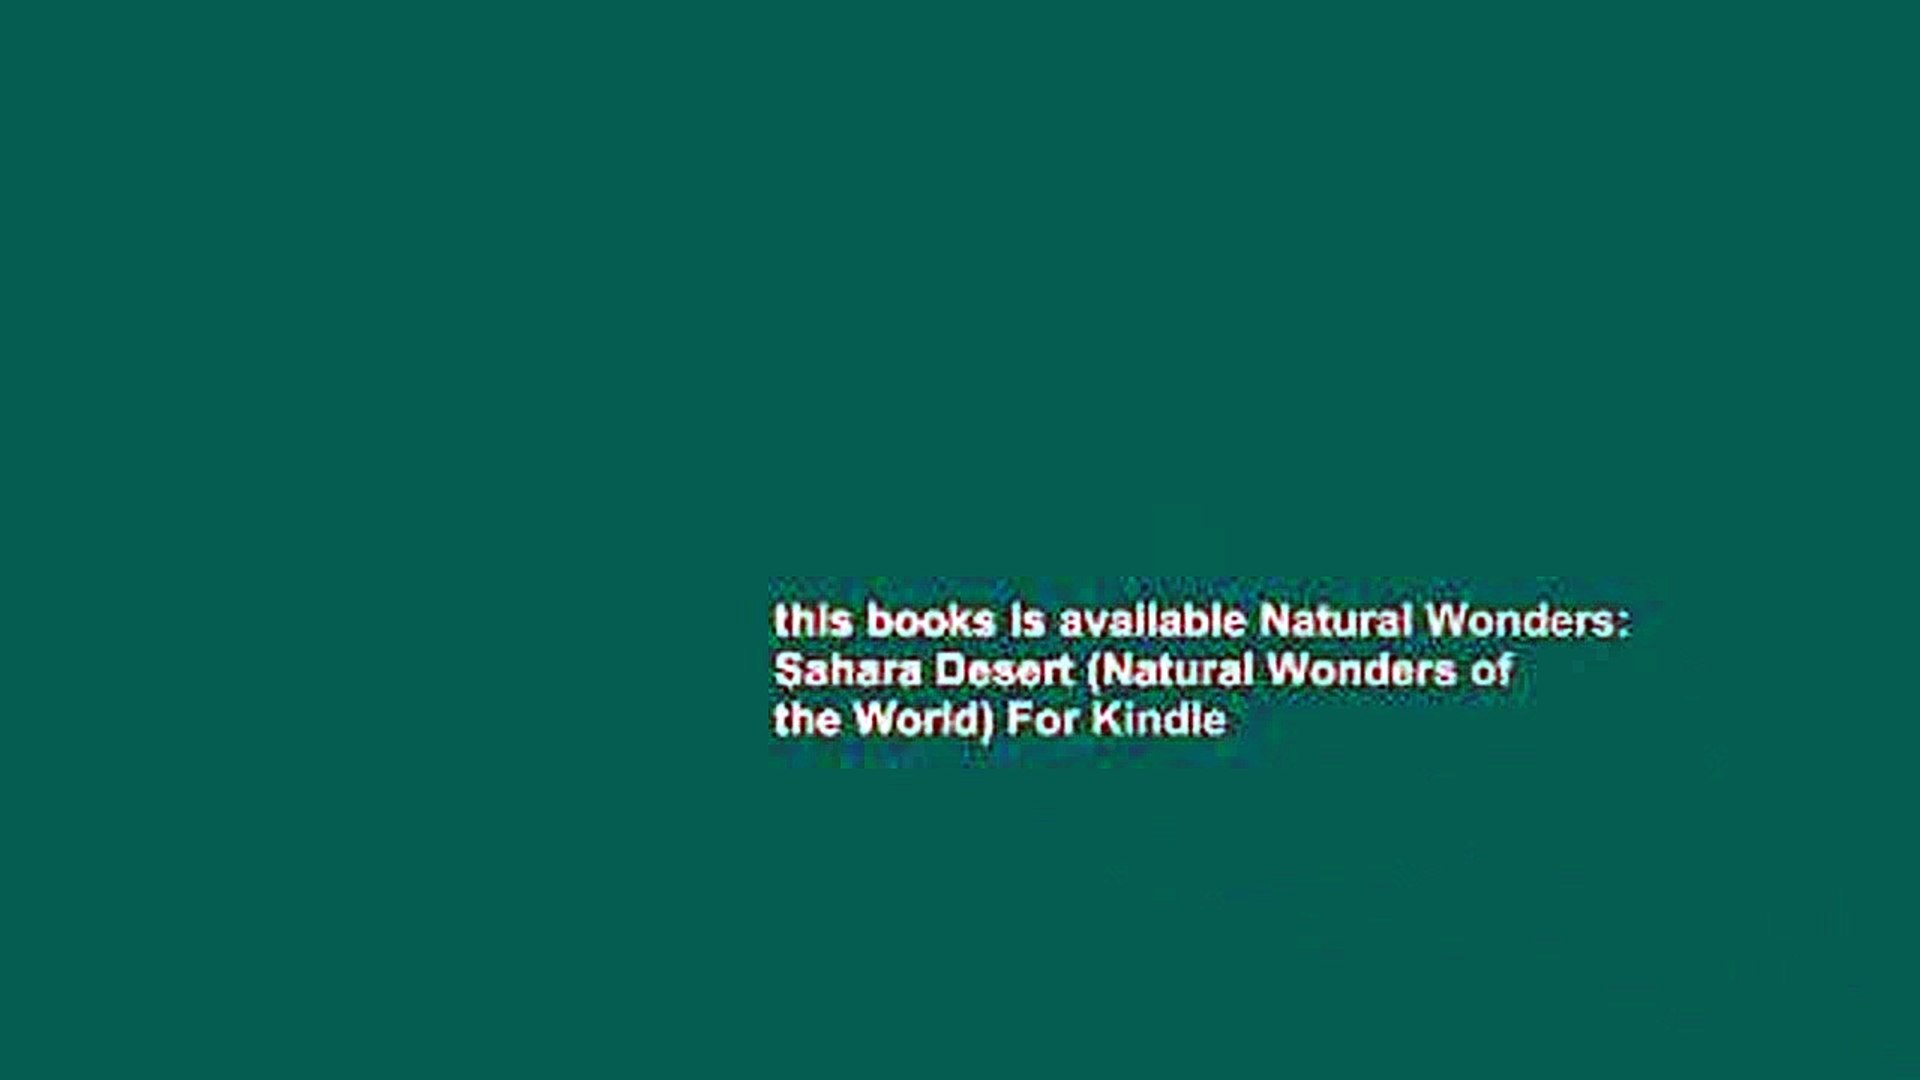 this books is available Natural Wonders: Sahara Desert (Natural Wonders of the World) For Kindle